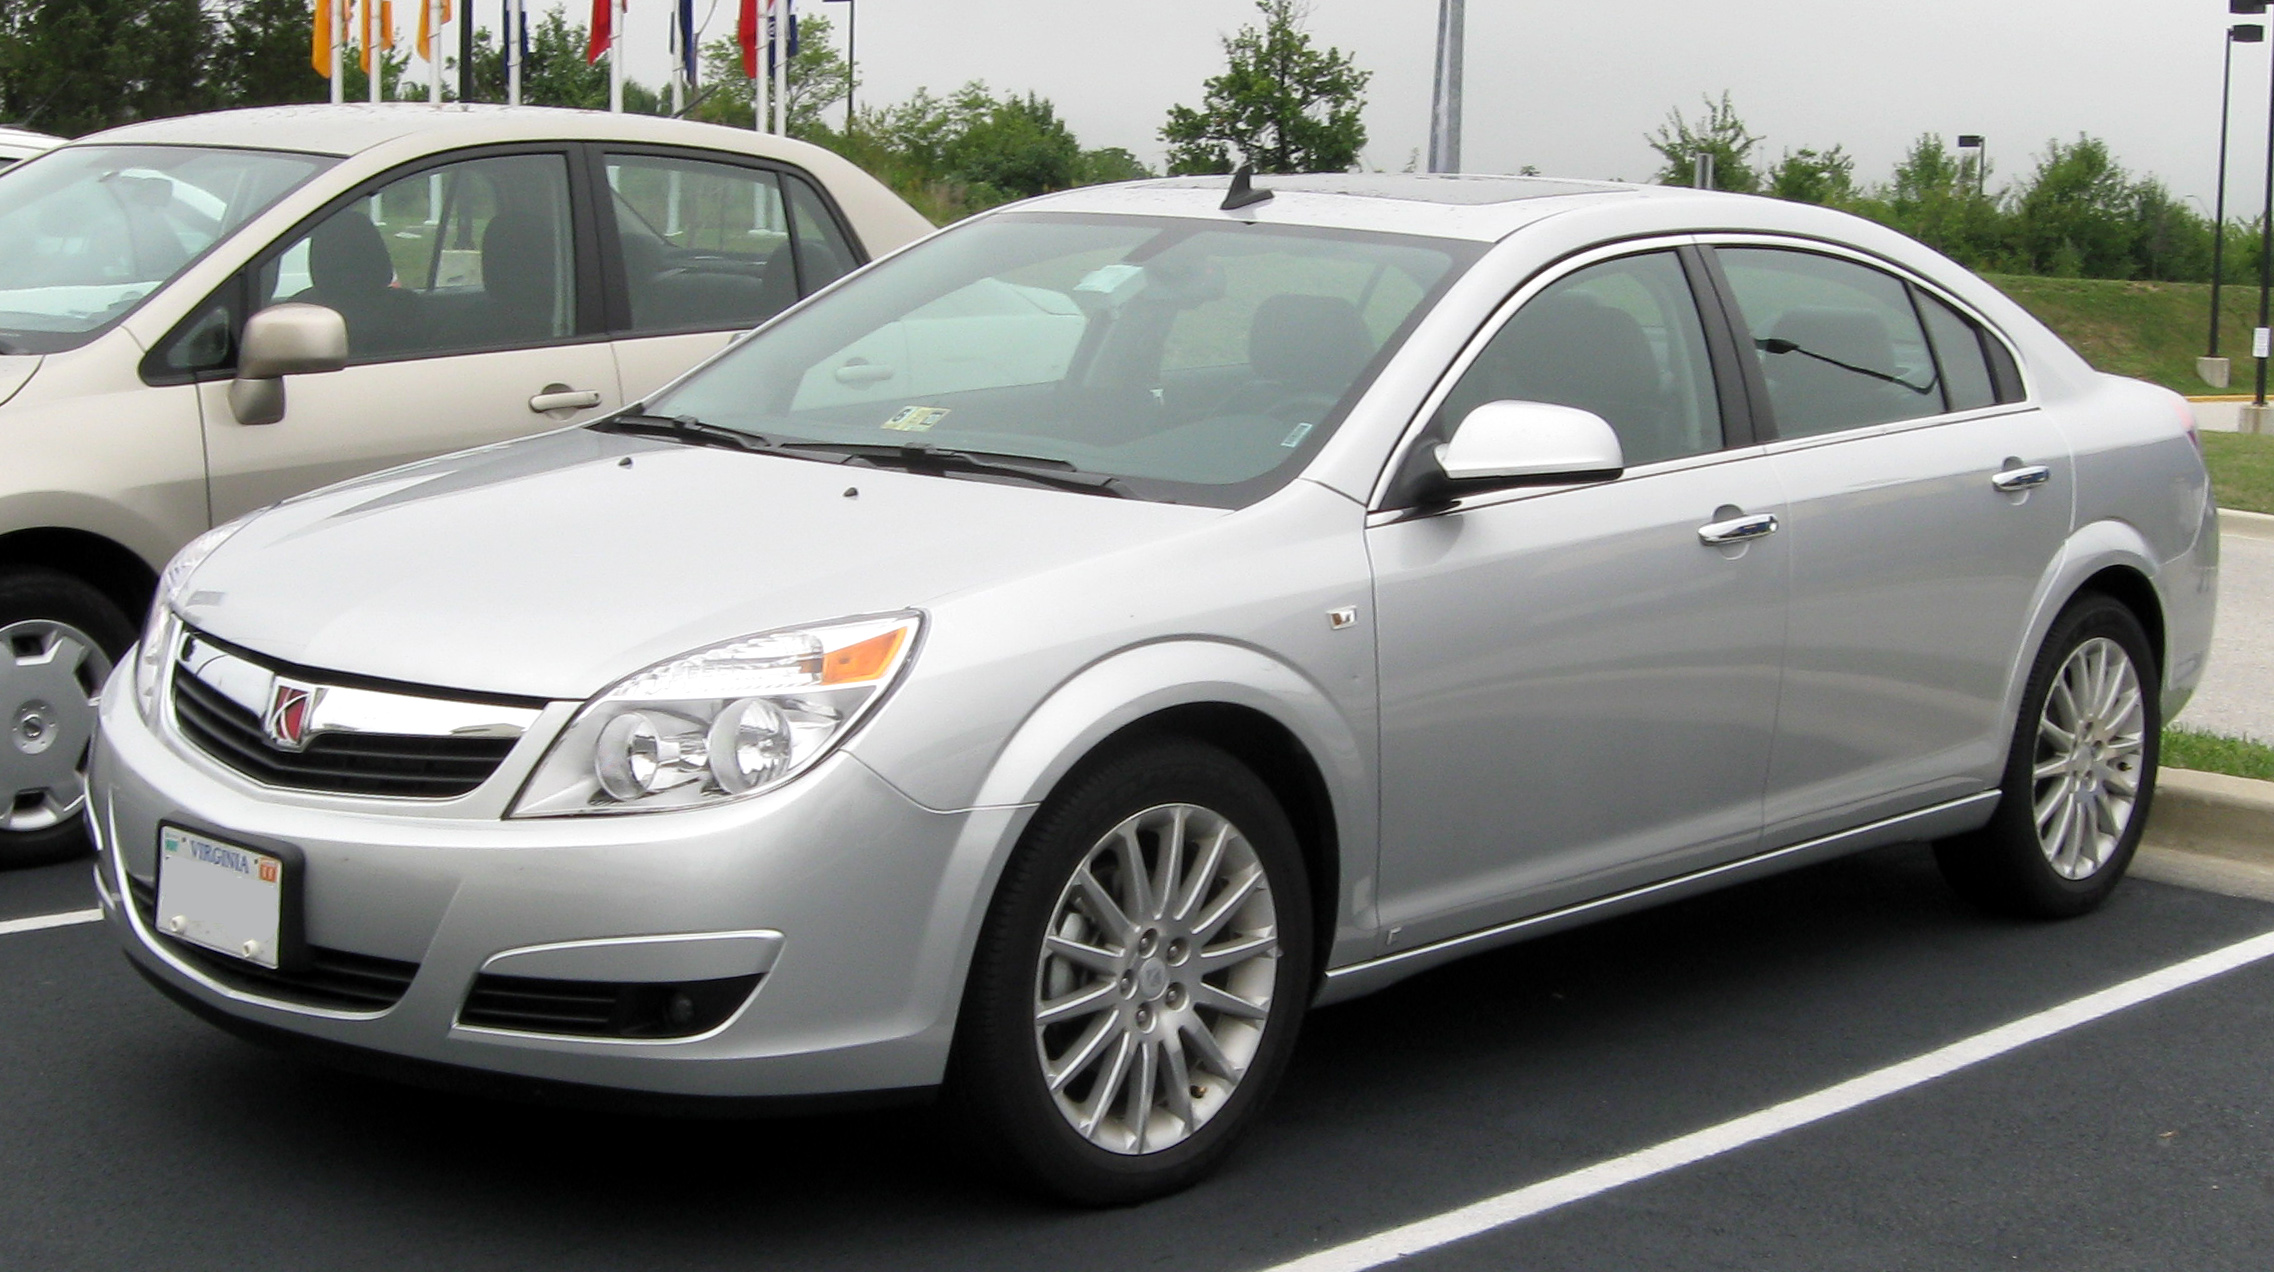 2008 saturn aura information and photos zombiedrive